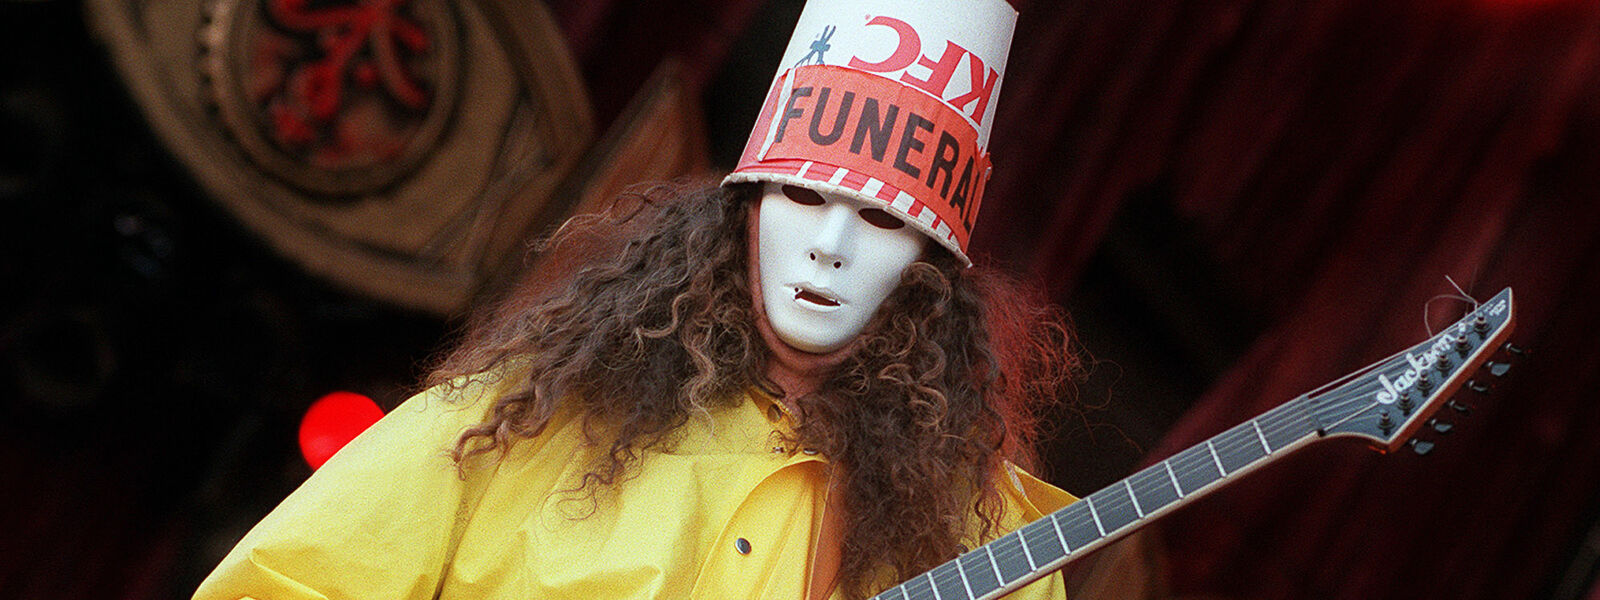 PARKING PASSES ONLY Buckethead